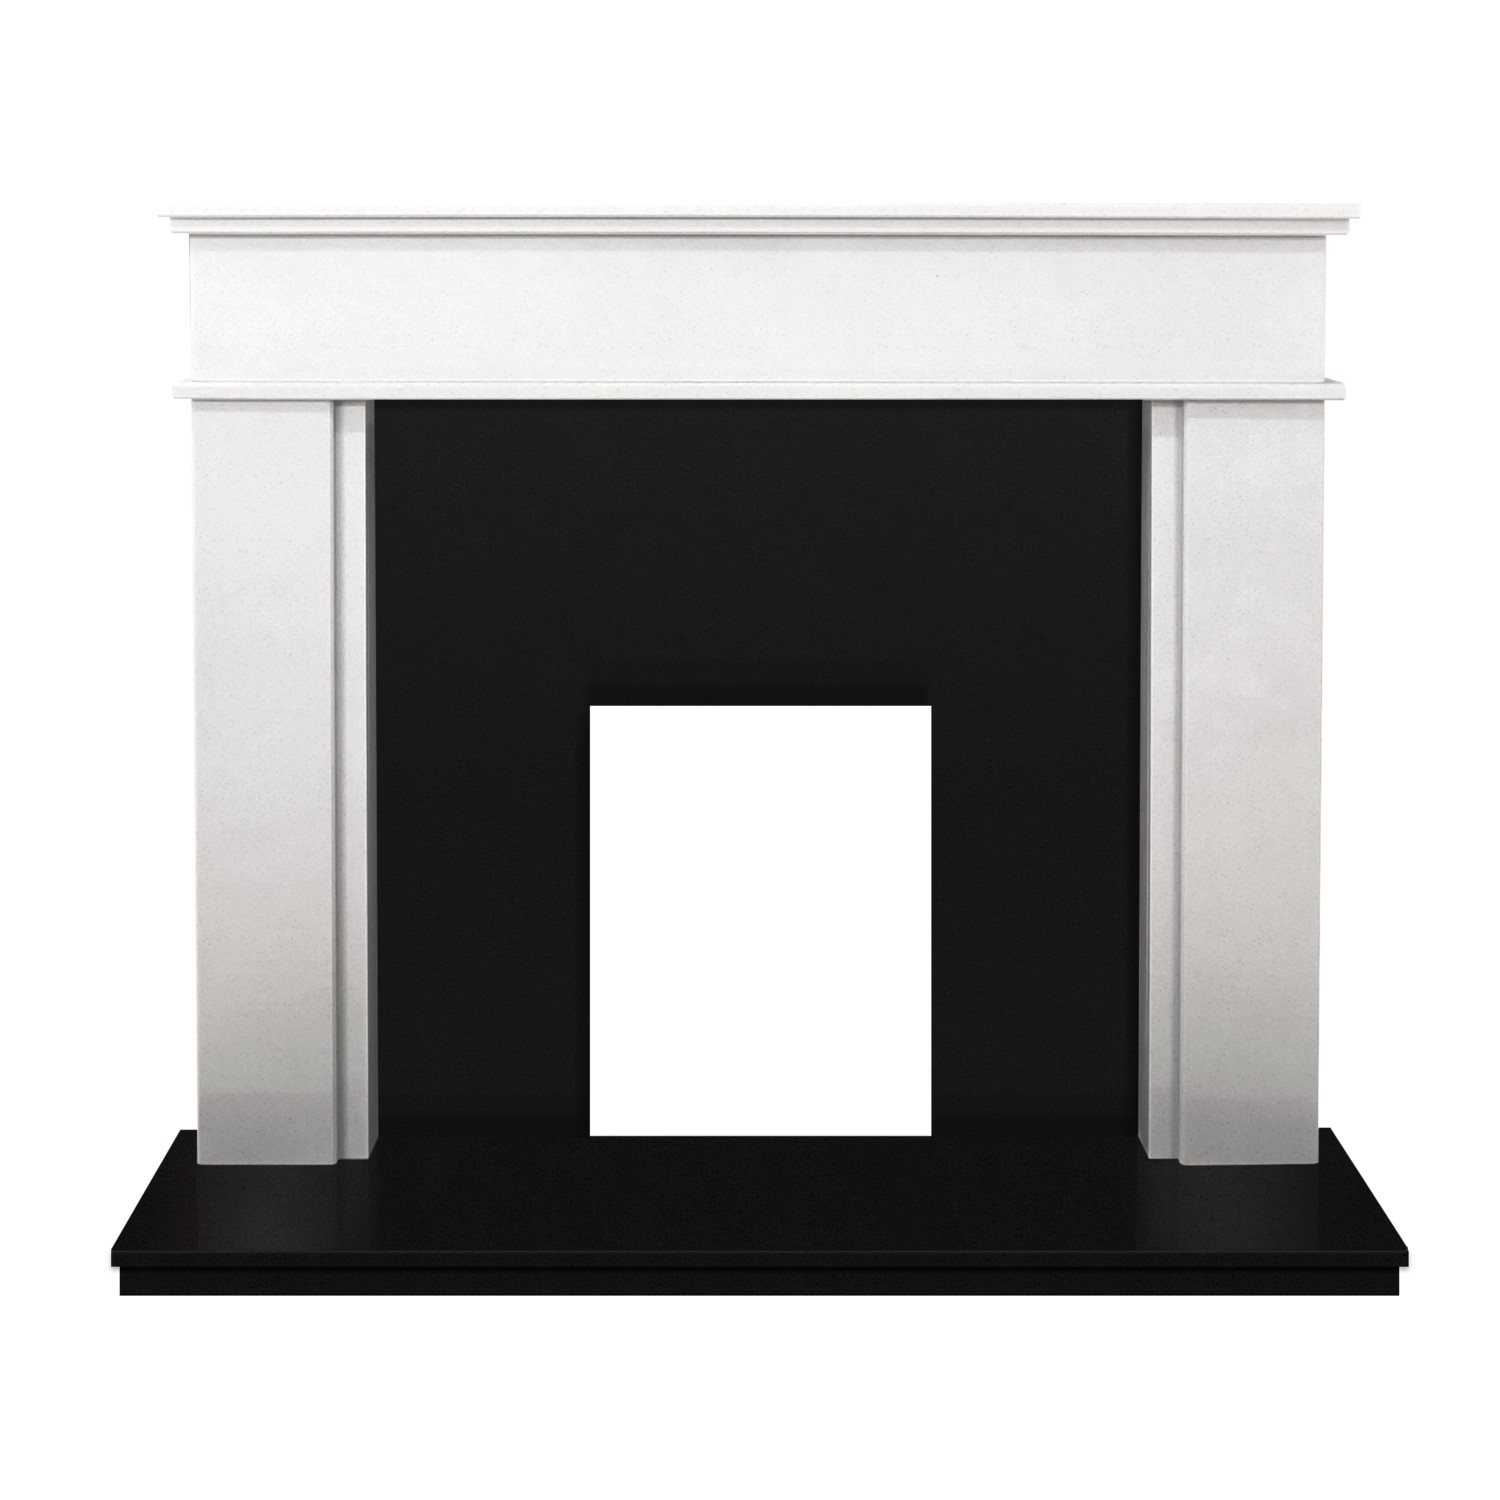 Adam Portland Sparkly White Marble Fireplace Surround With Black Hearth Furniture123